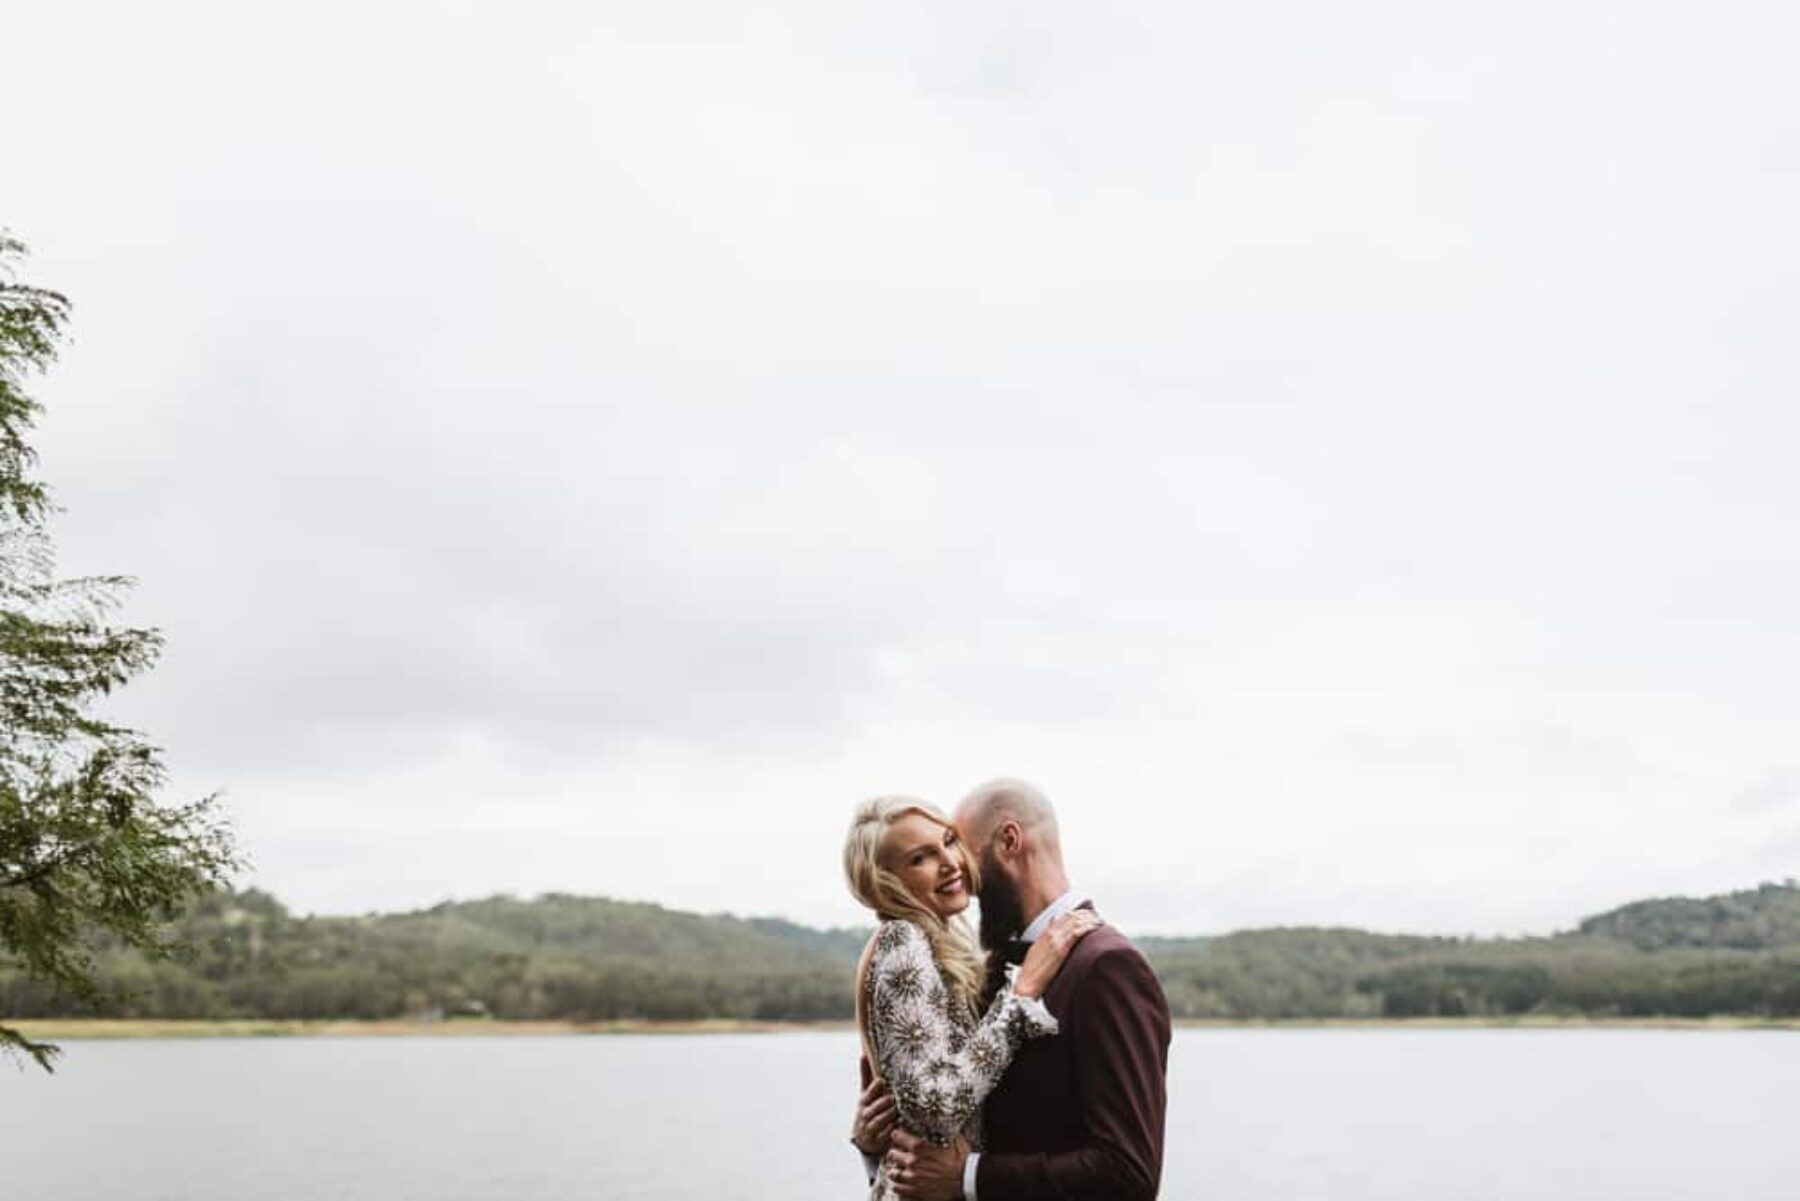 relaxed and intimate wedding at Secrets on the Lake Montville QLD - photography by Janneke Storm